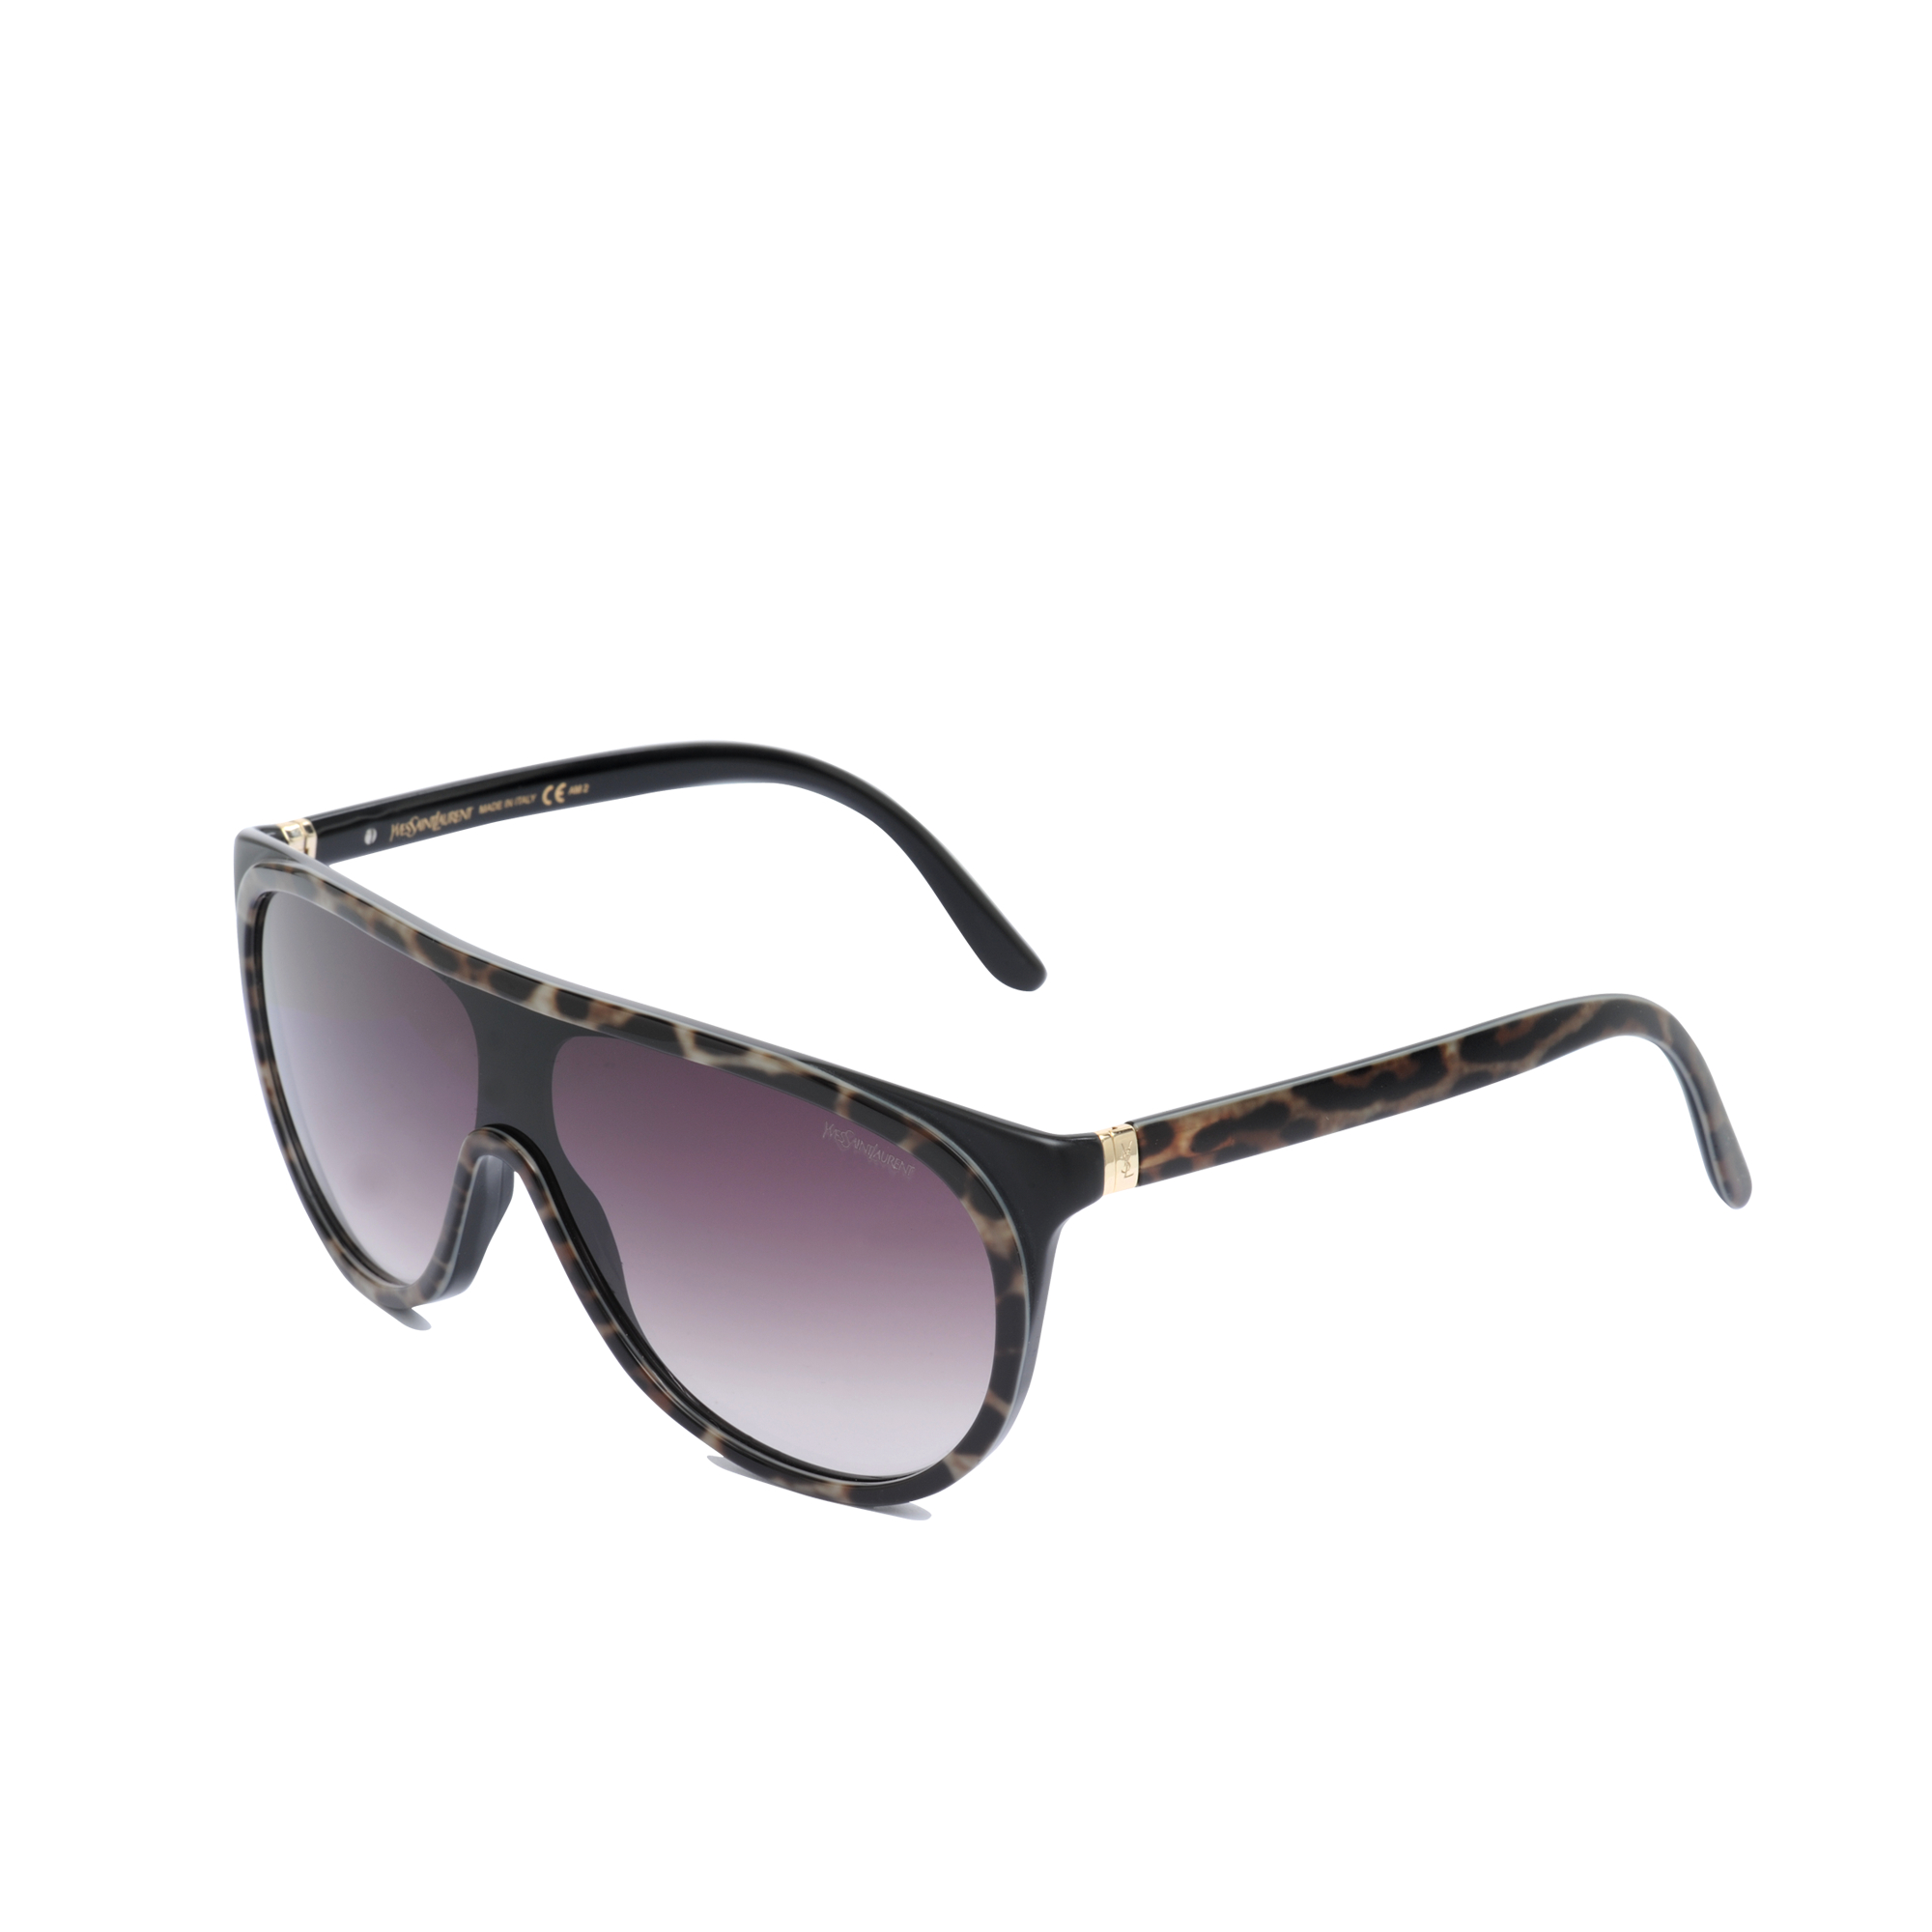 af3d0a84c7 Saint Laurent Sunglasses Ysl 2341 S in Brown - Lyst